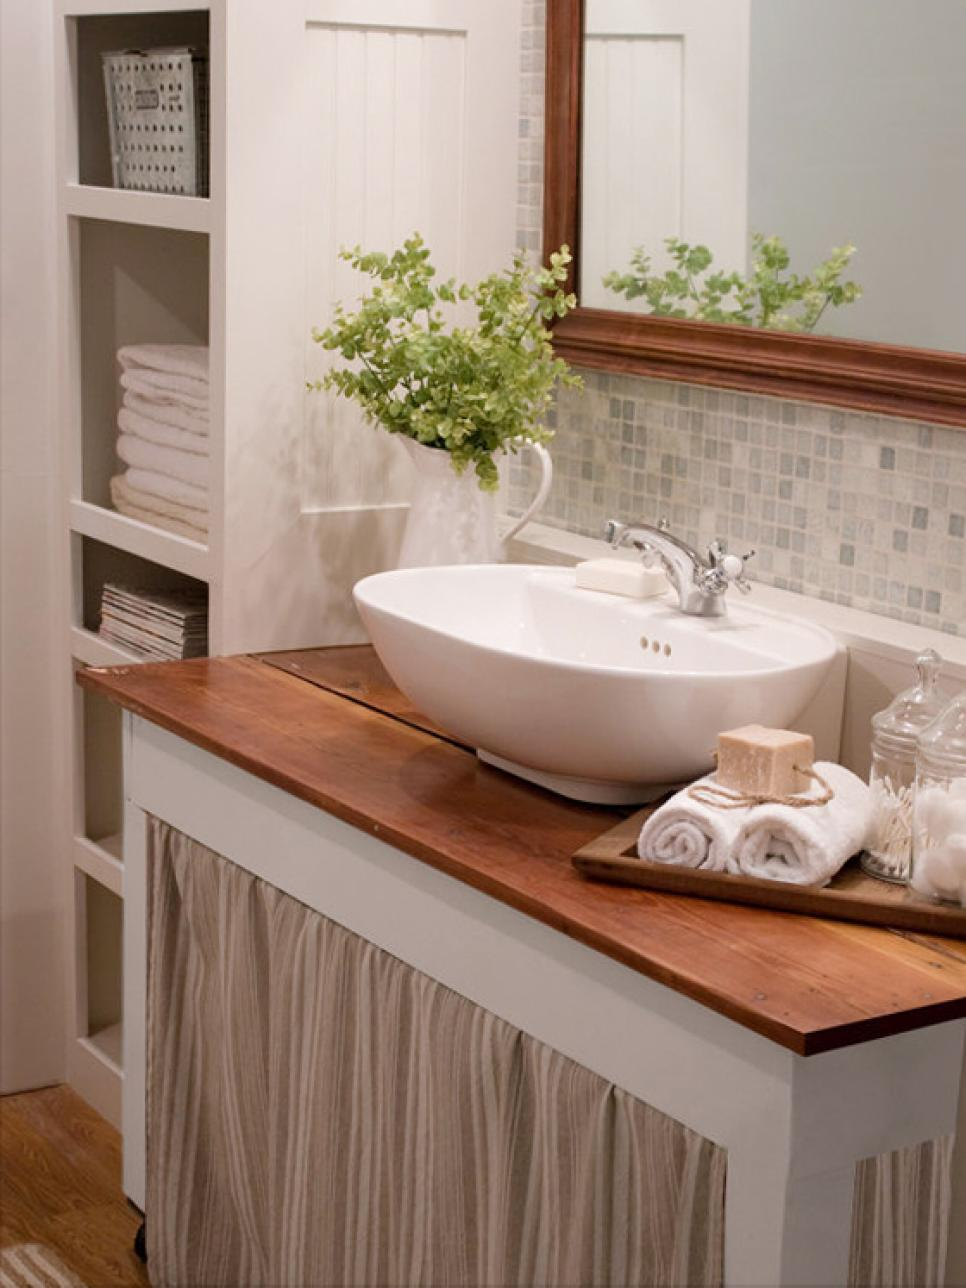 18 Tiny Bathrooms That Pack a Punch | DIY